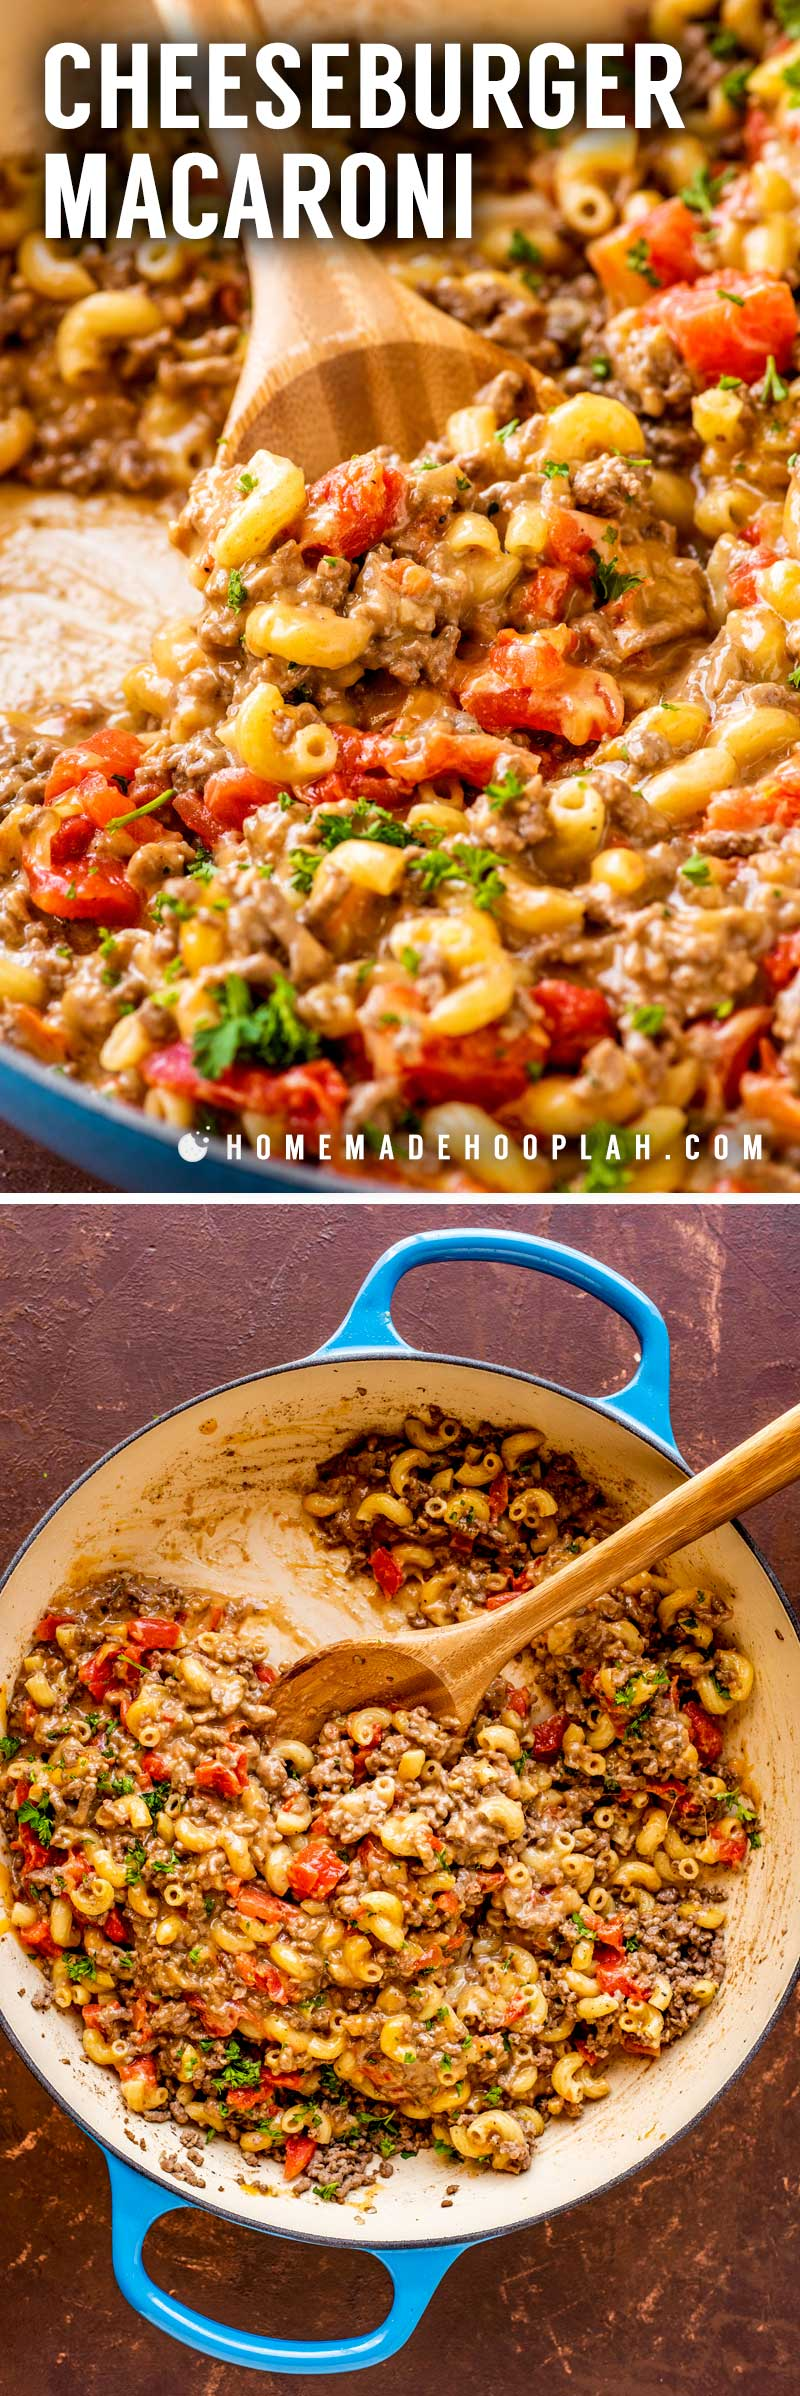 Cheeseburger Macaroni! If you're looking for an easy and hassle-free weeknight dinner, this cheeseburger macaroni hits all the marks. With tender pasta and seasoned ground beef that's topped with melted cheese, this dish not only packs a ton of flavor but can be made in one pan from start to finish. | HomemadeHooplah.com